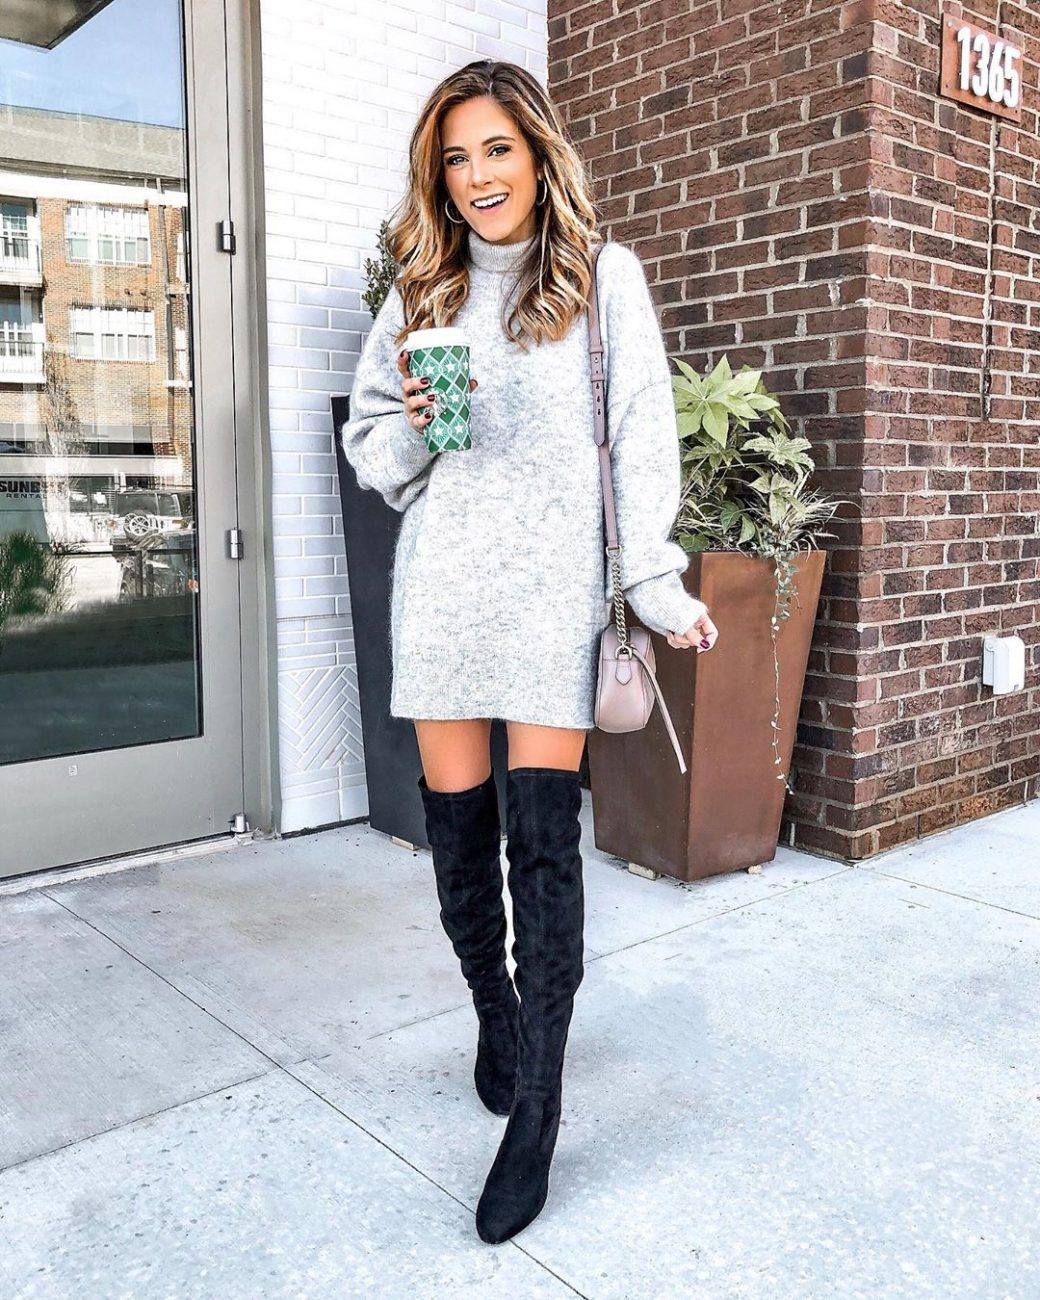 style-sweater-dresses-boots